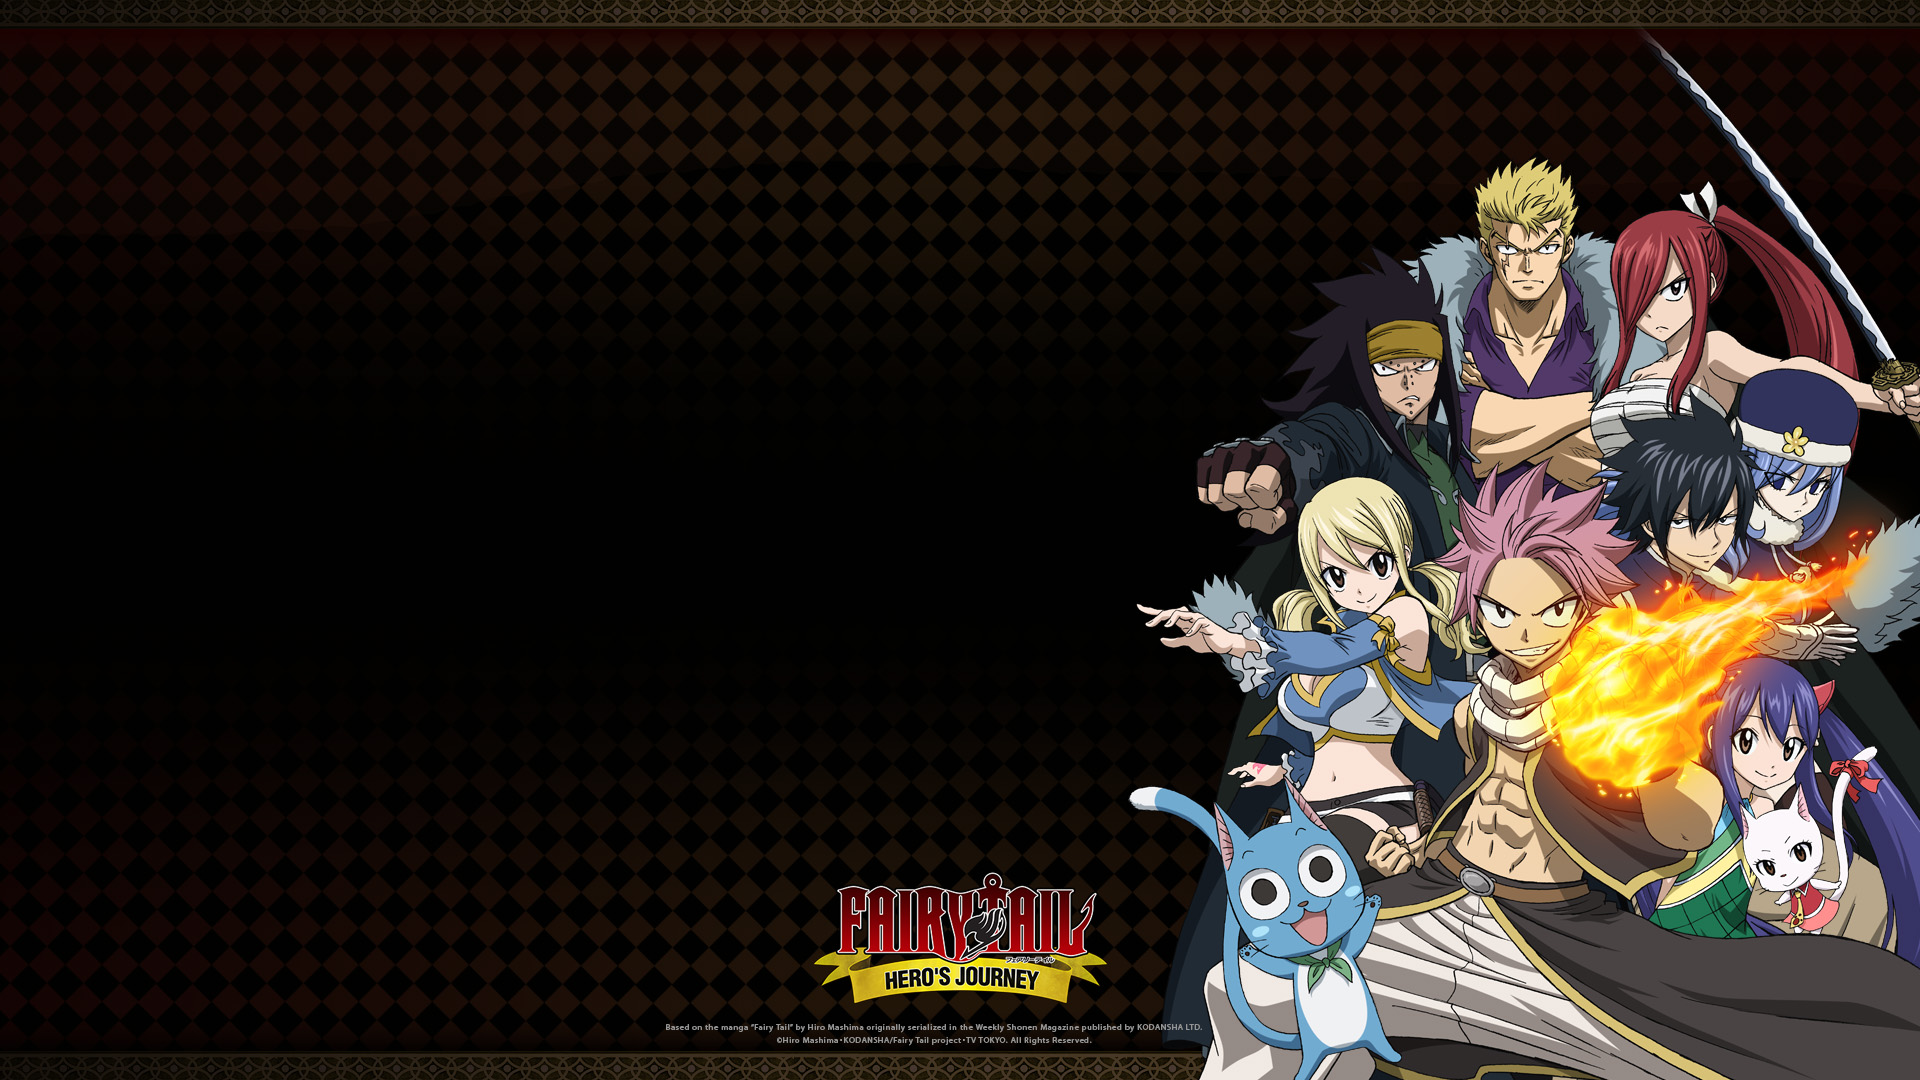 Fairy tail dating sim game